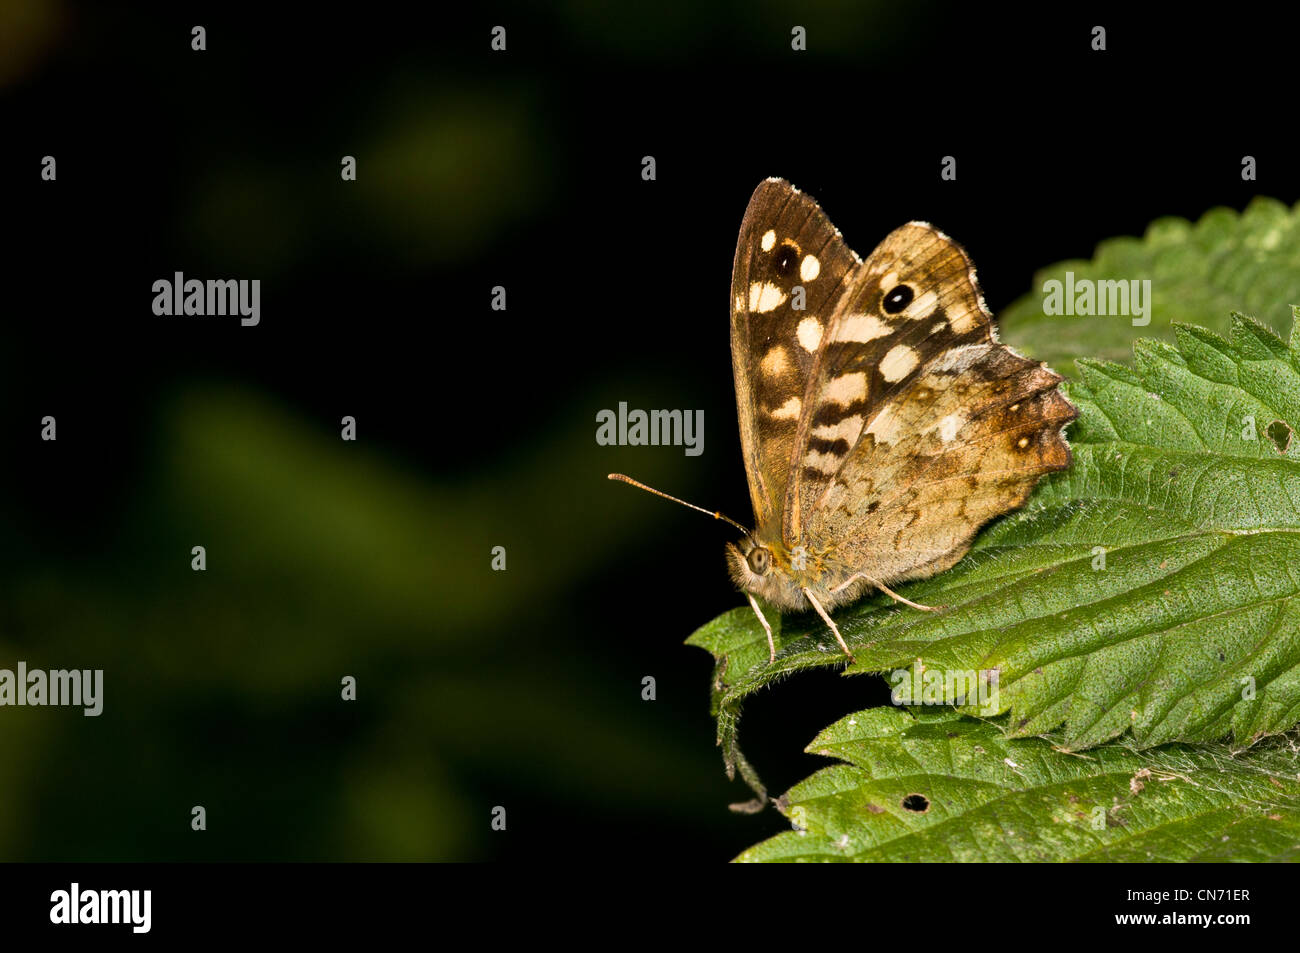 A speckled wood butterfly (Pararge aegeria) perched on a nettle at Sevenoaks Wildlife Reserve, Kent. August. - Stock Image